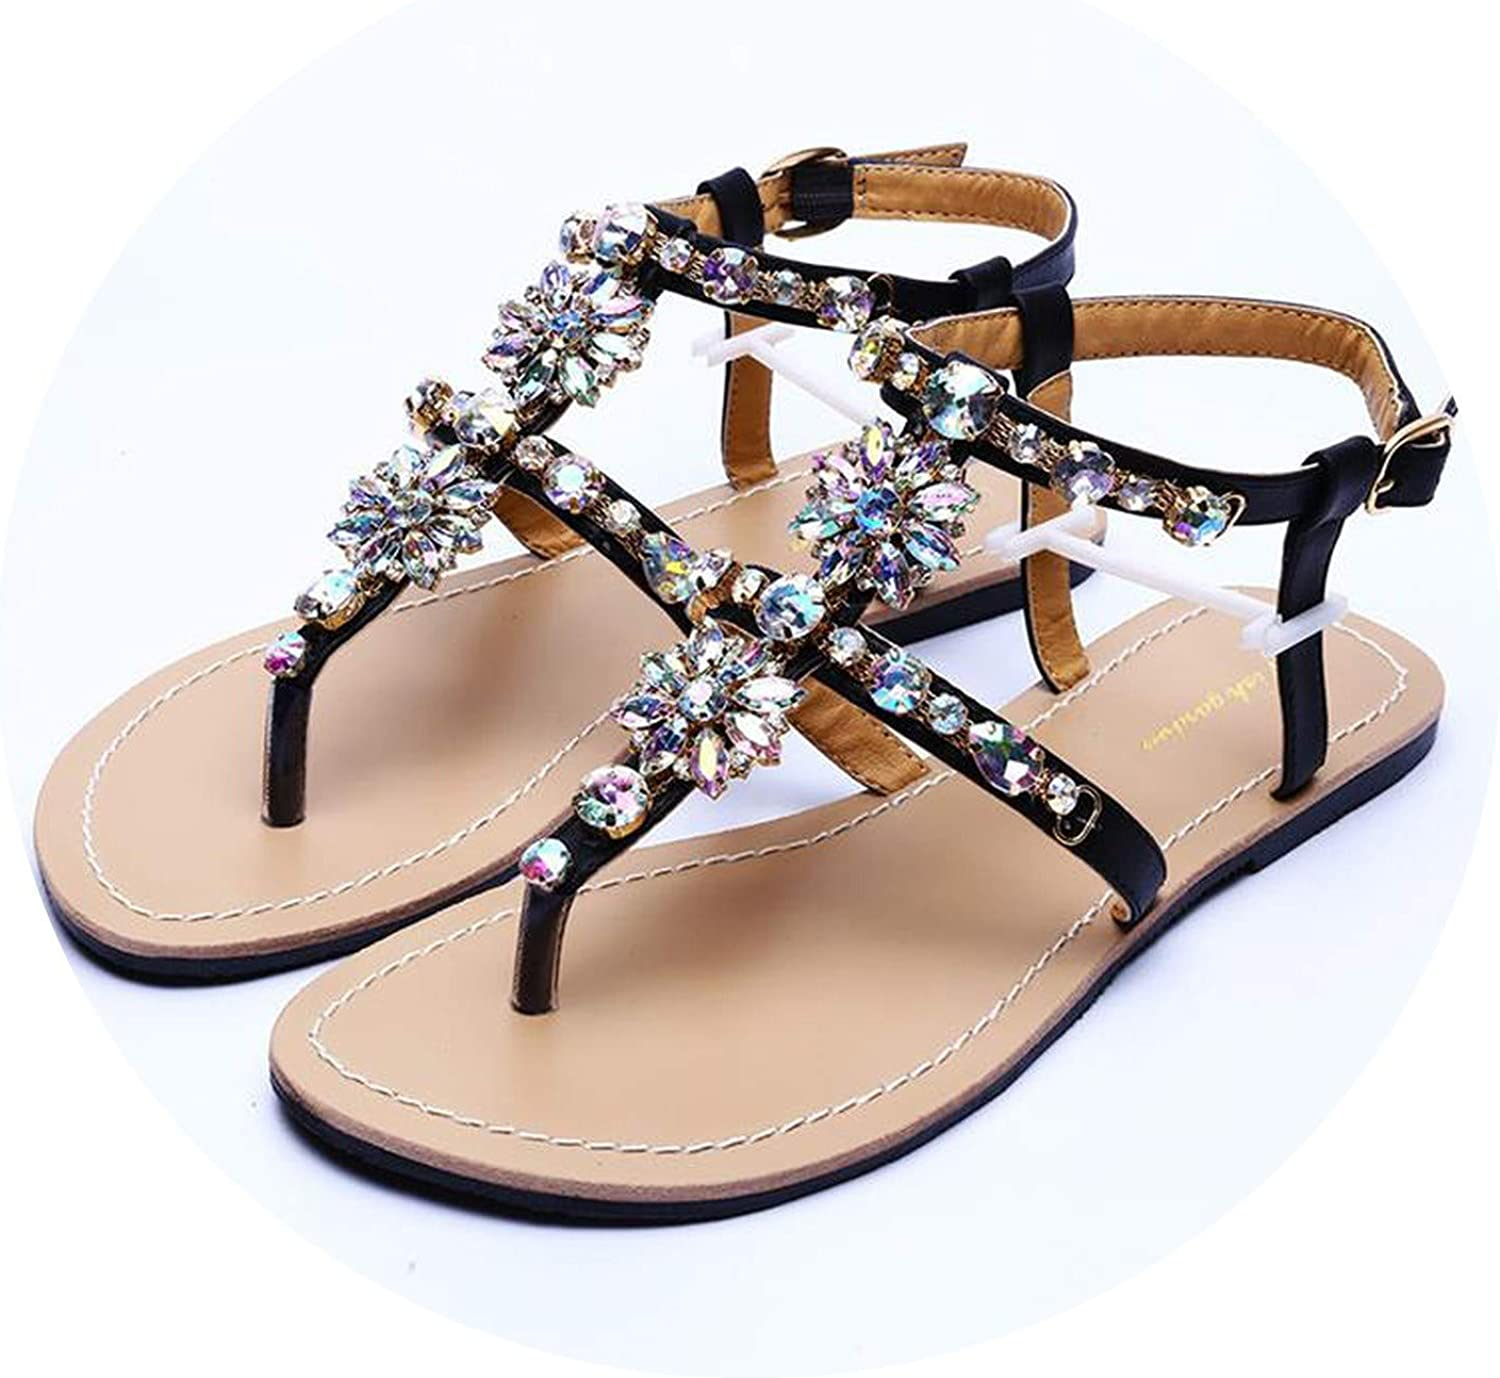 Efficiency 2019 New Women`s Beach Shining Rhinestones shoes Summer Bohemia Diamond Sandals T-Strap Thong flip Flops